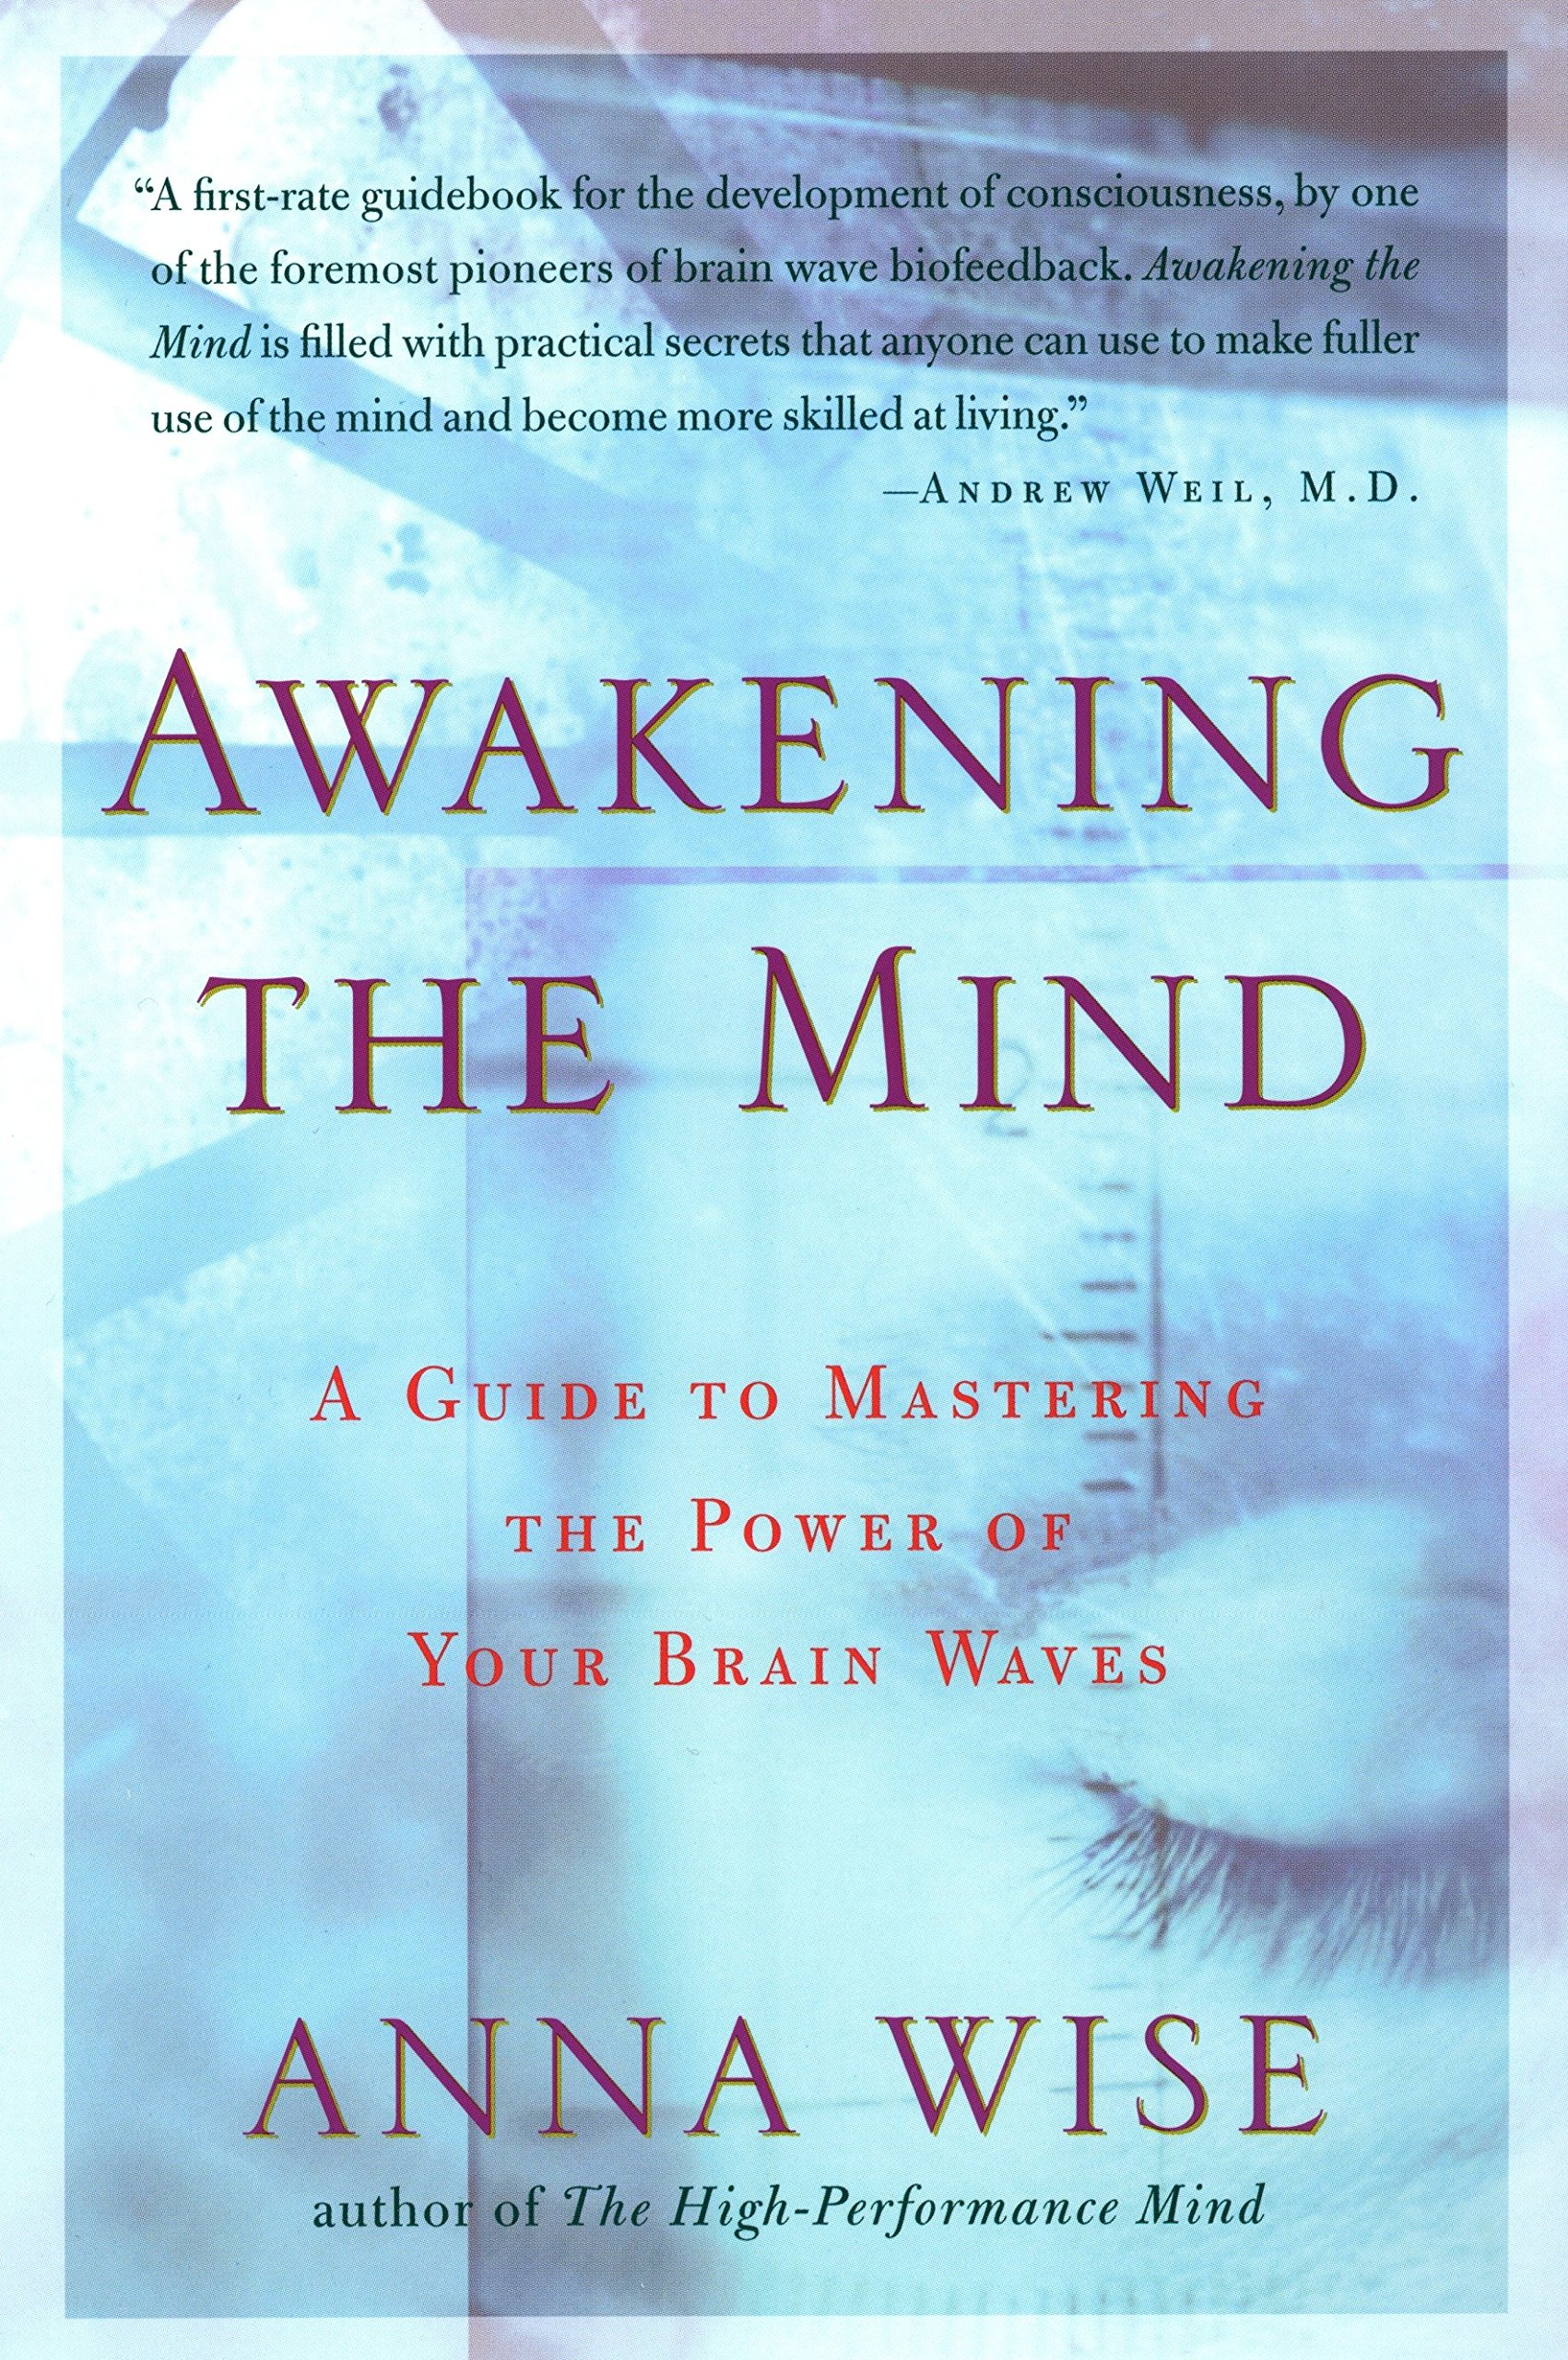 Awakening the Mind: A Guide to Harnessing the Power of Your Brainwaves: A Guide of Mastering the Power of Your Brain Waves